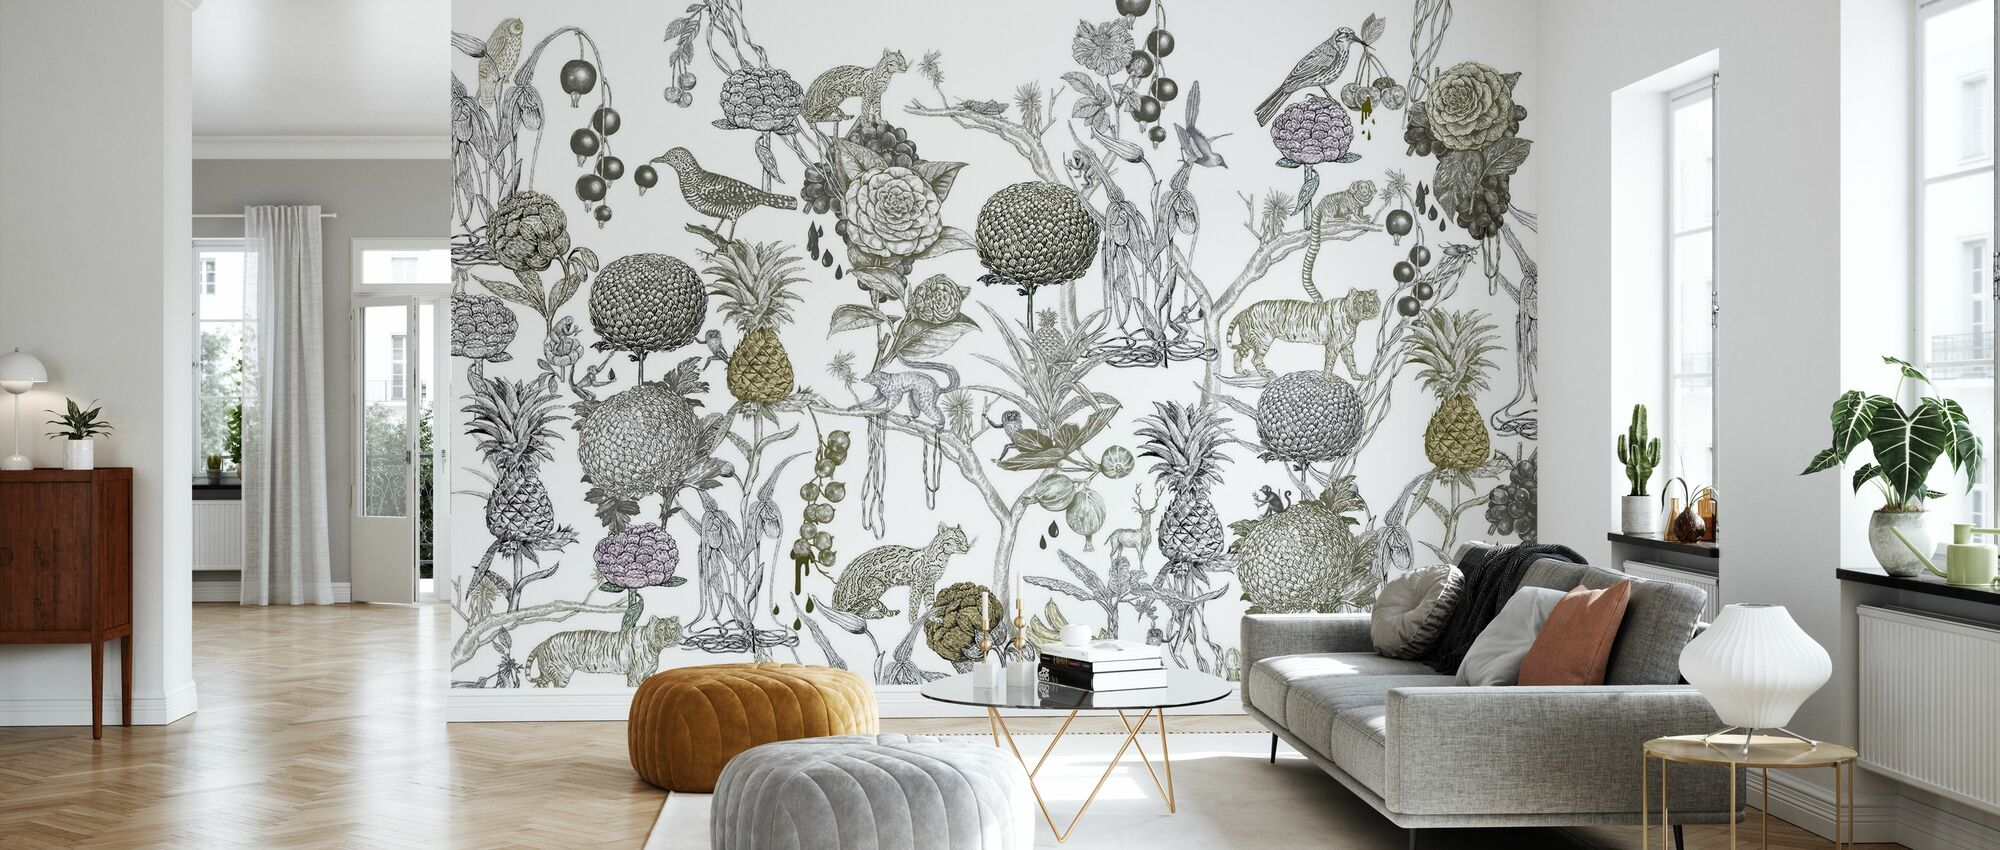 Wild at Heart - Wallpaper - Living Room